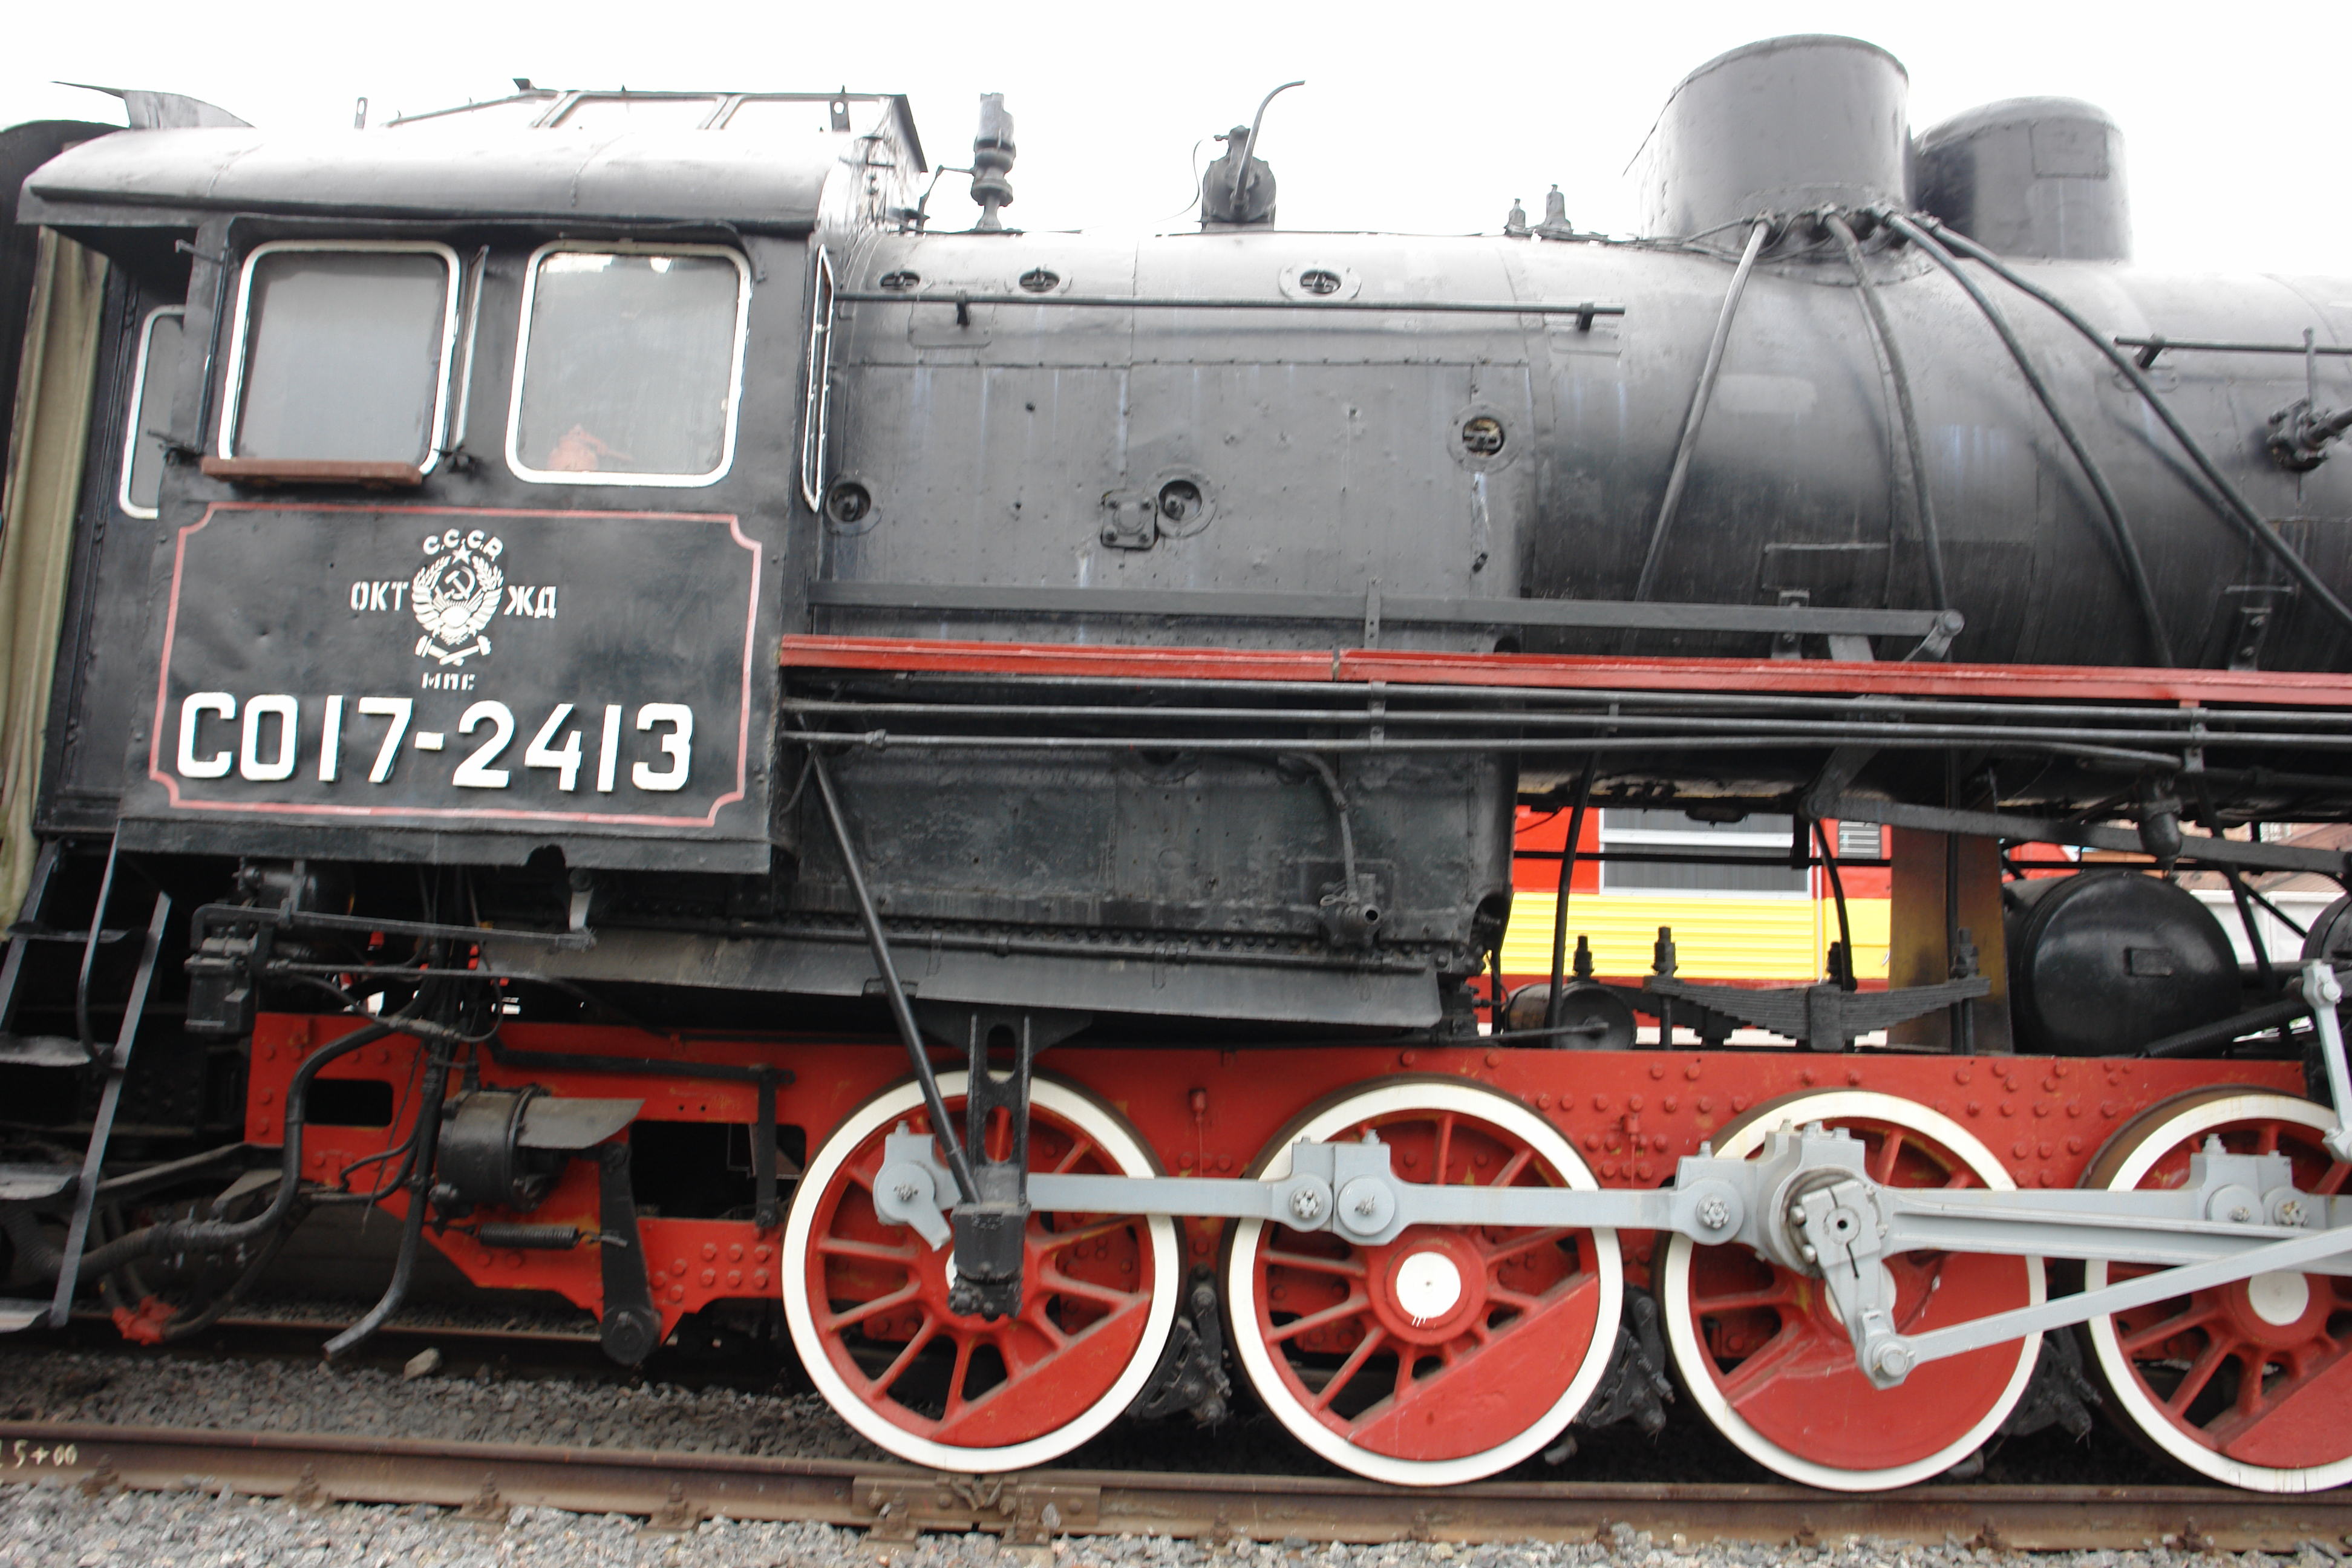 File:FREIGHT STEAM LOCOMOTIVE SO17-2413 (9).jpg